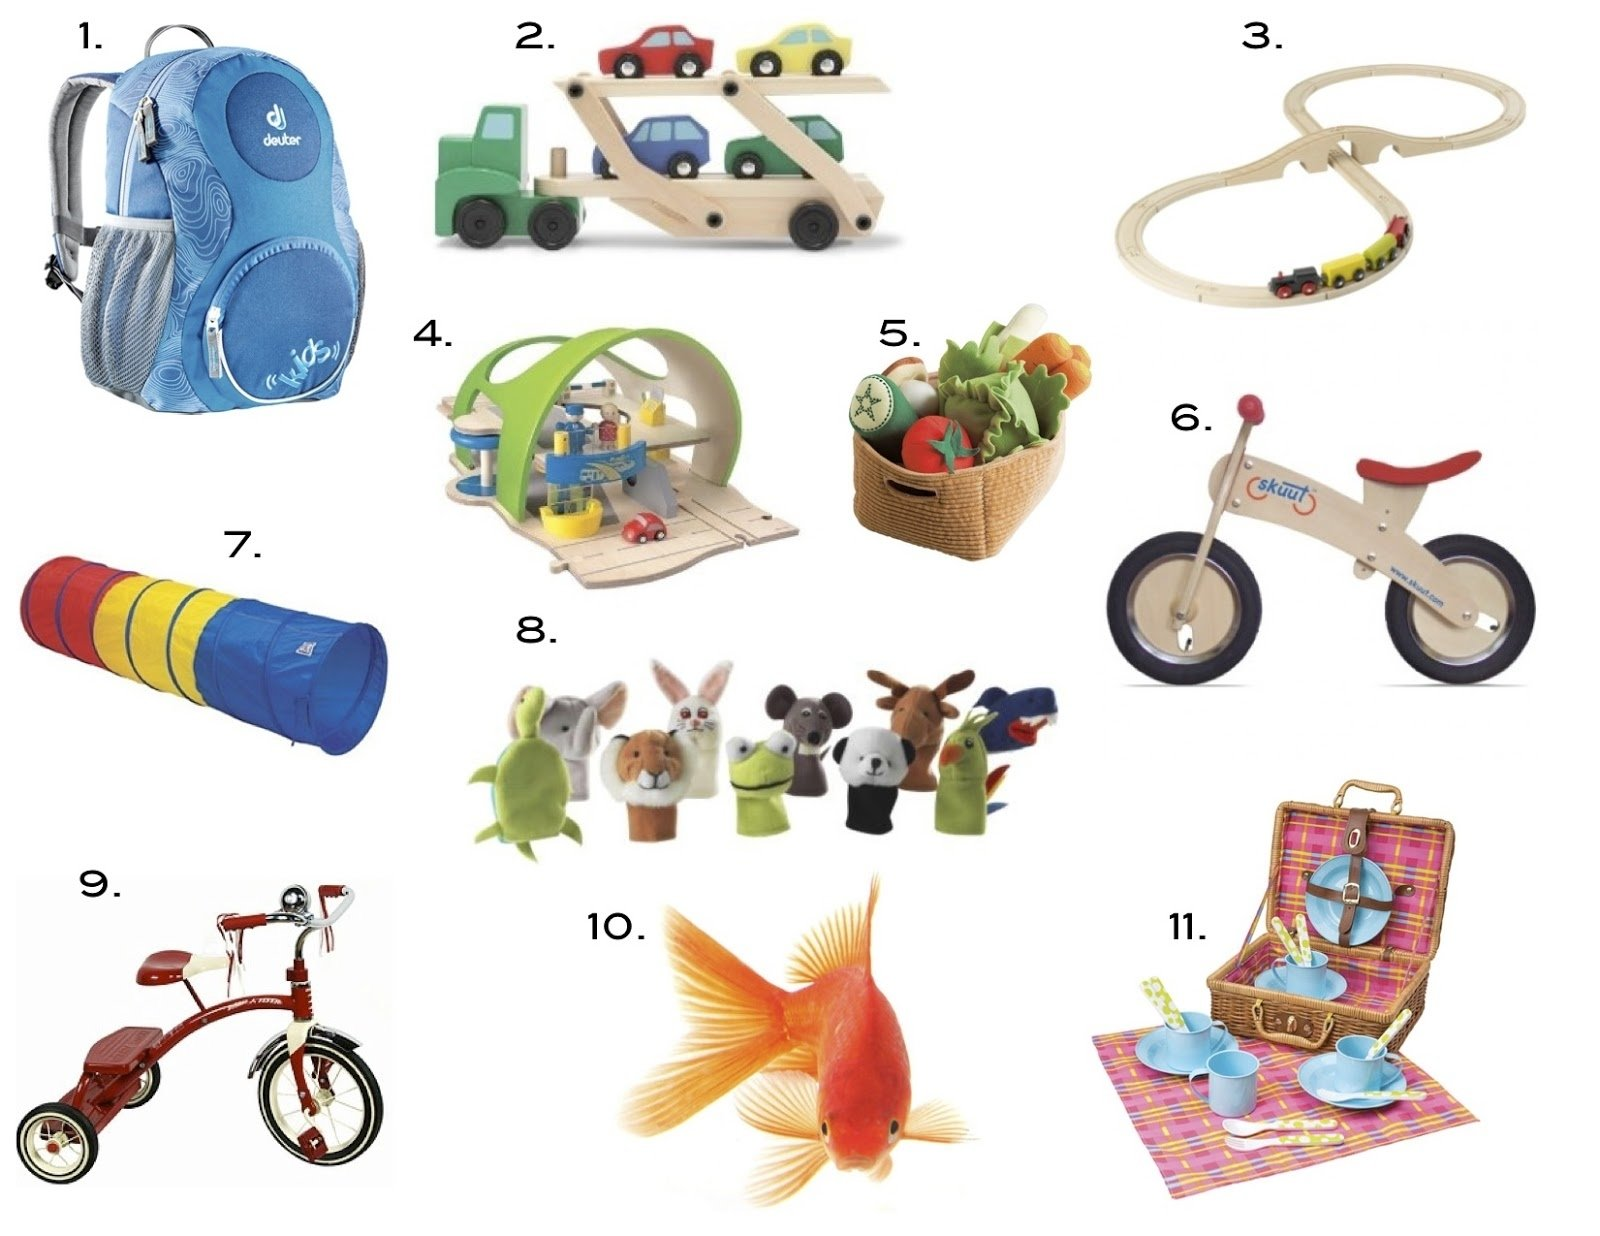 10 Lovely 7 Year Old Boy Birthday Gift Ideas Chris And Sonja The Sweet Seattle Life